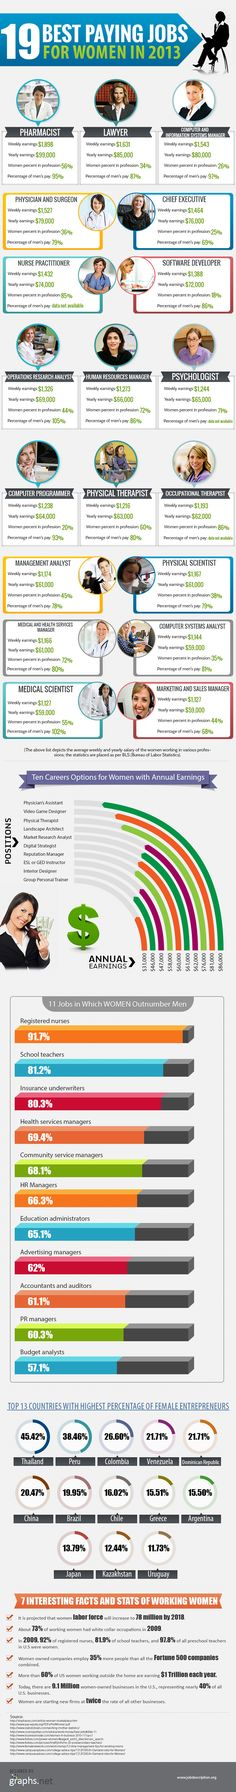 19 Best Paying Jobs for Women in 2013 | #infographics repinned by @Piktochart